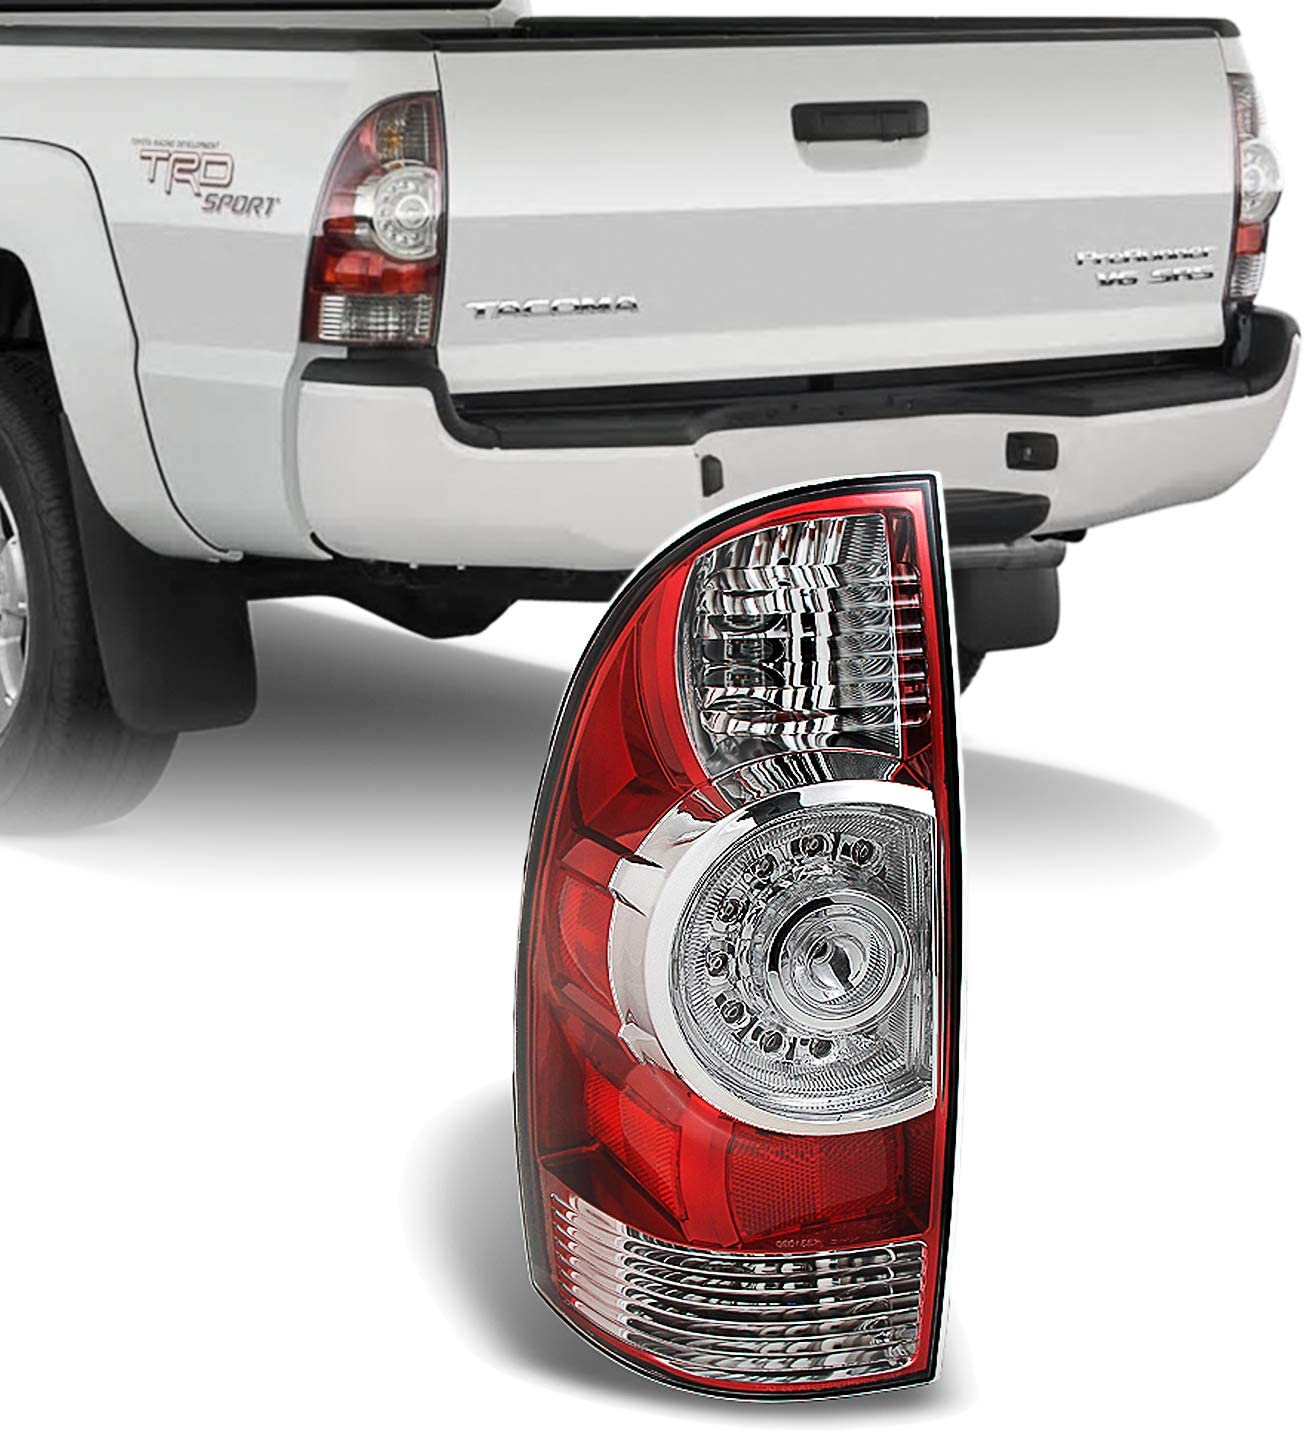 ACANII For Smoke Len 2005-2015 Toyota Tacoma Truck Tail Lights Brake Lamps Taillights 05-15 Left Right Assembly